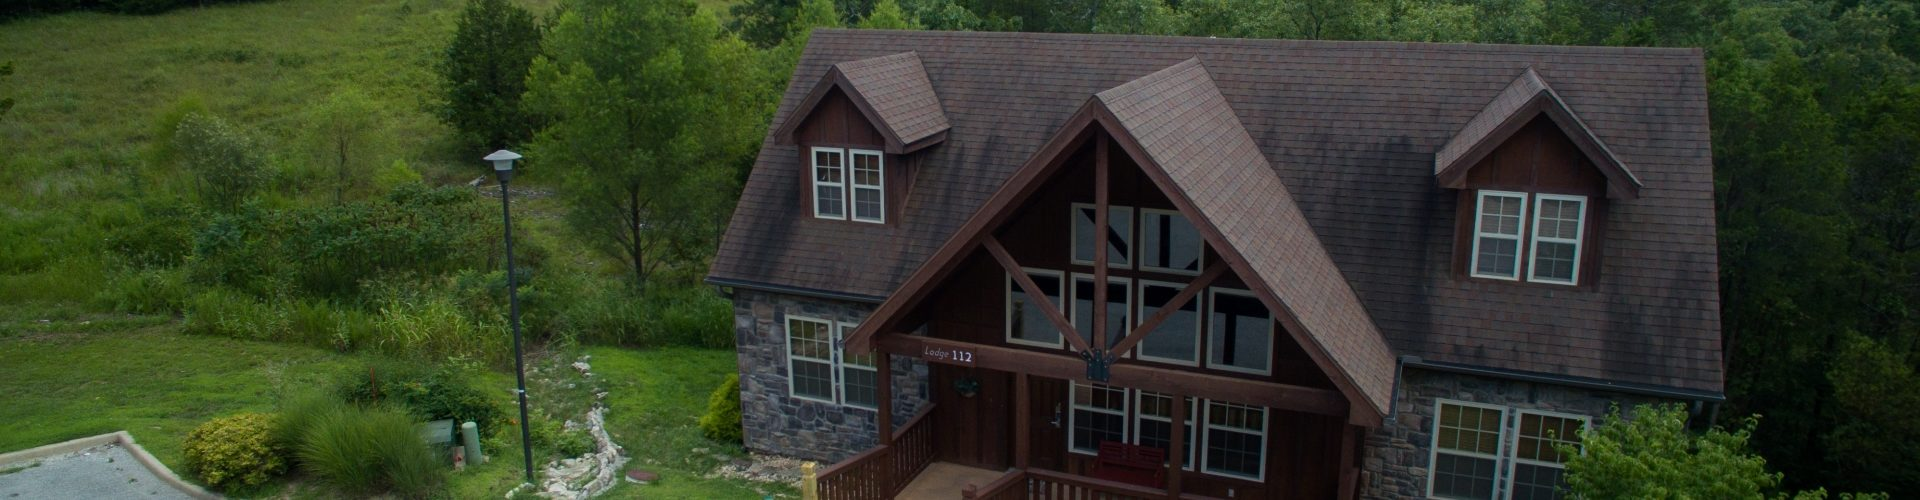 4 Bedroom Cabins In Branson Branson Travel Office